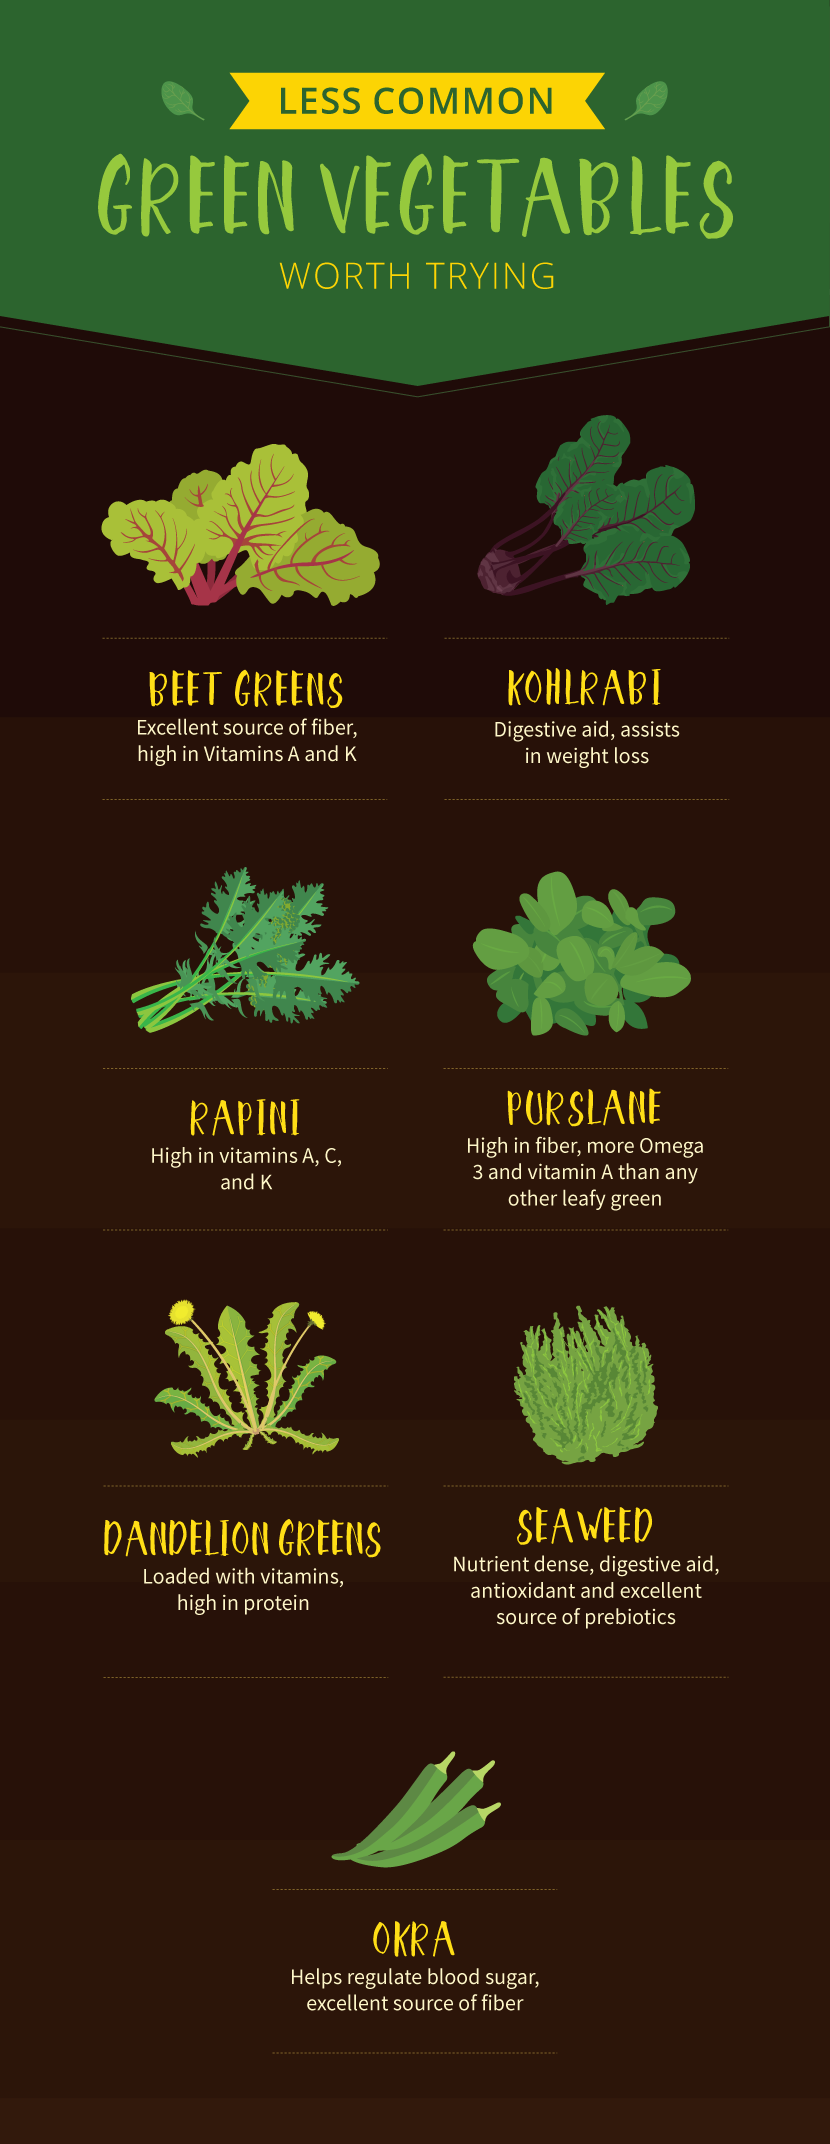 Lesser Known Green Vegetables - Try These Superfood Greens